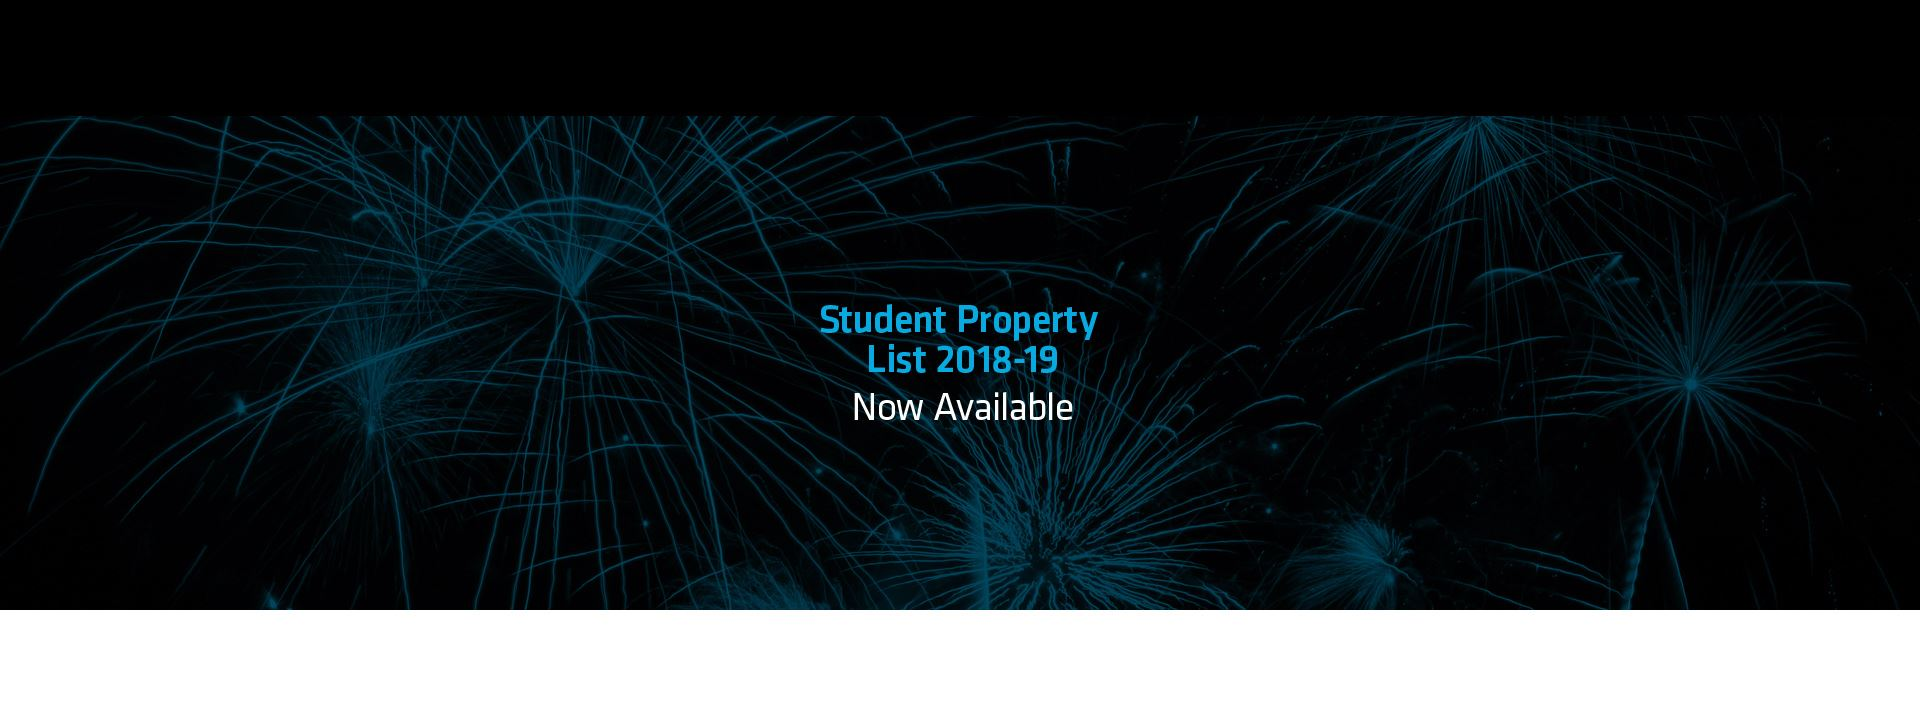 Student Property List 2018/19